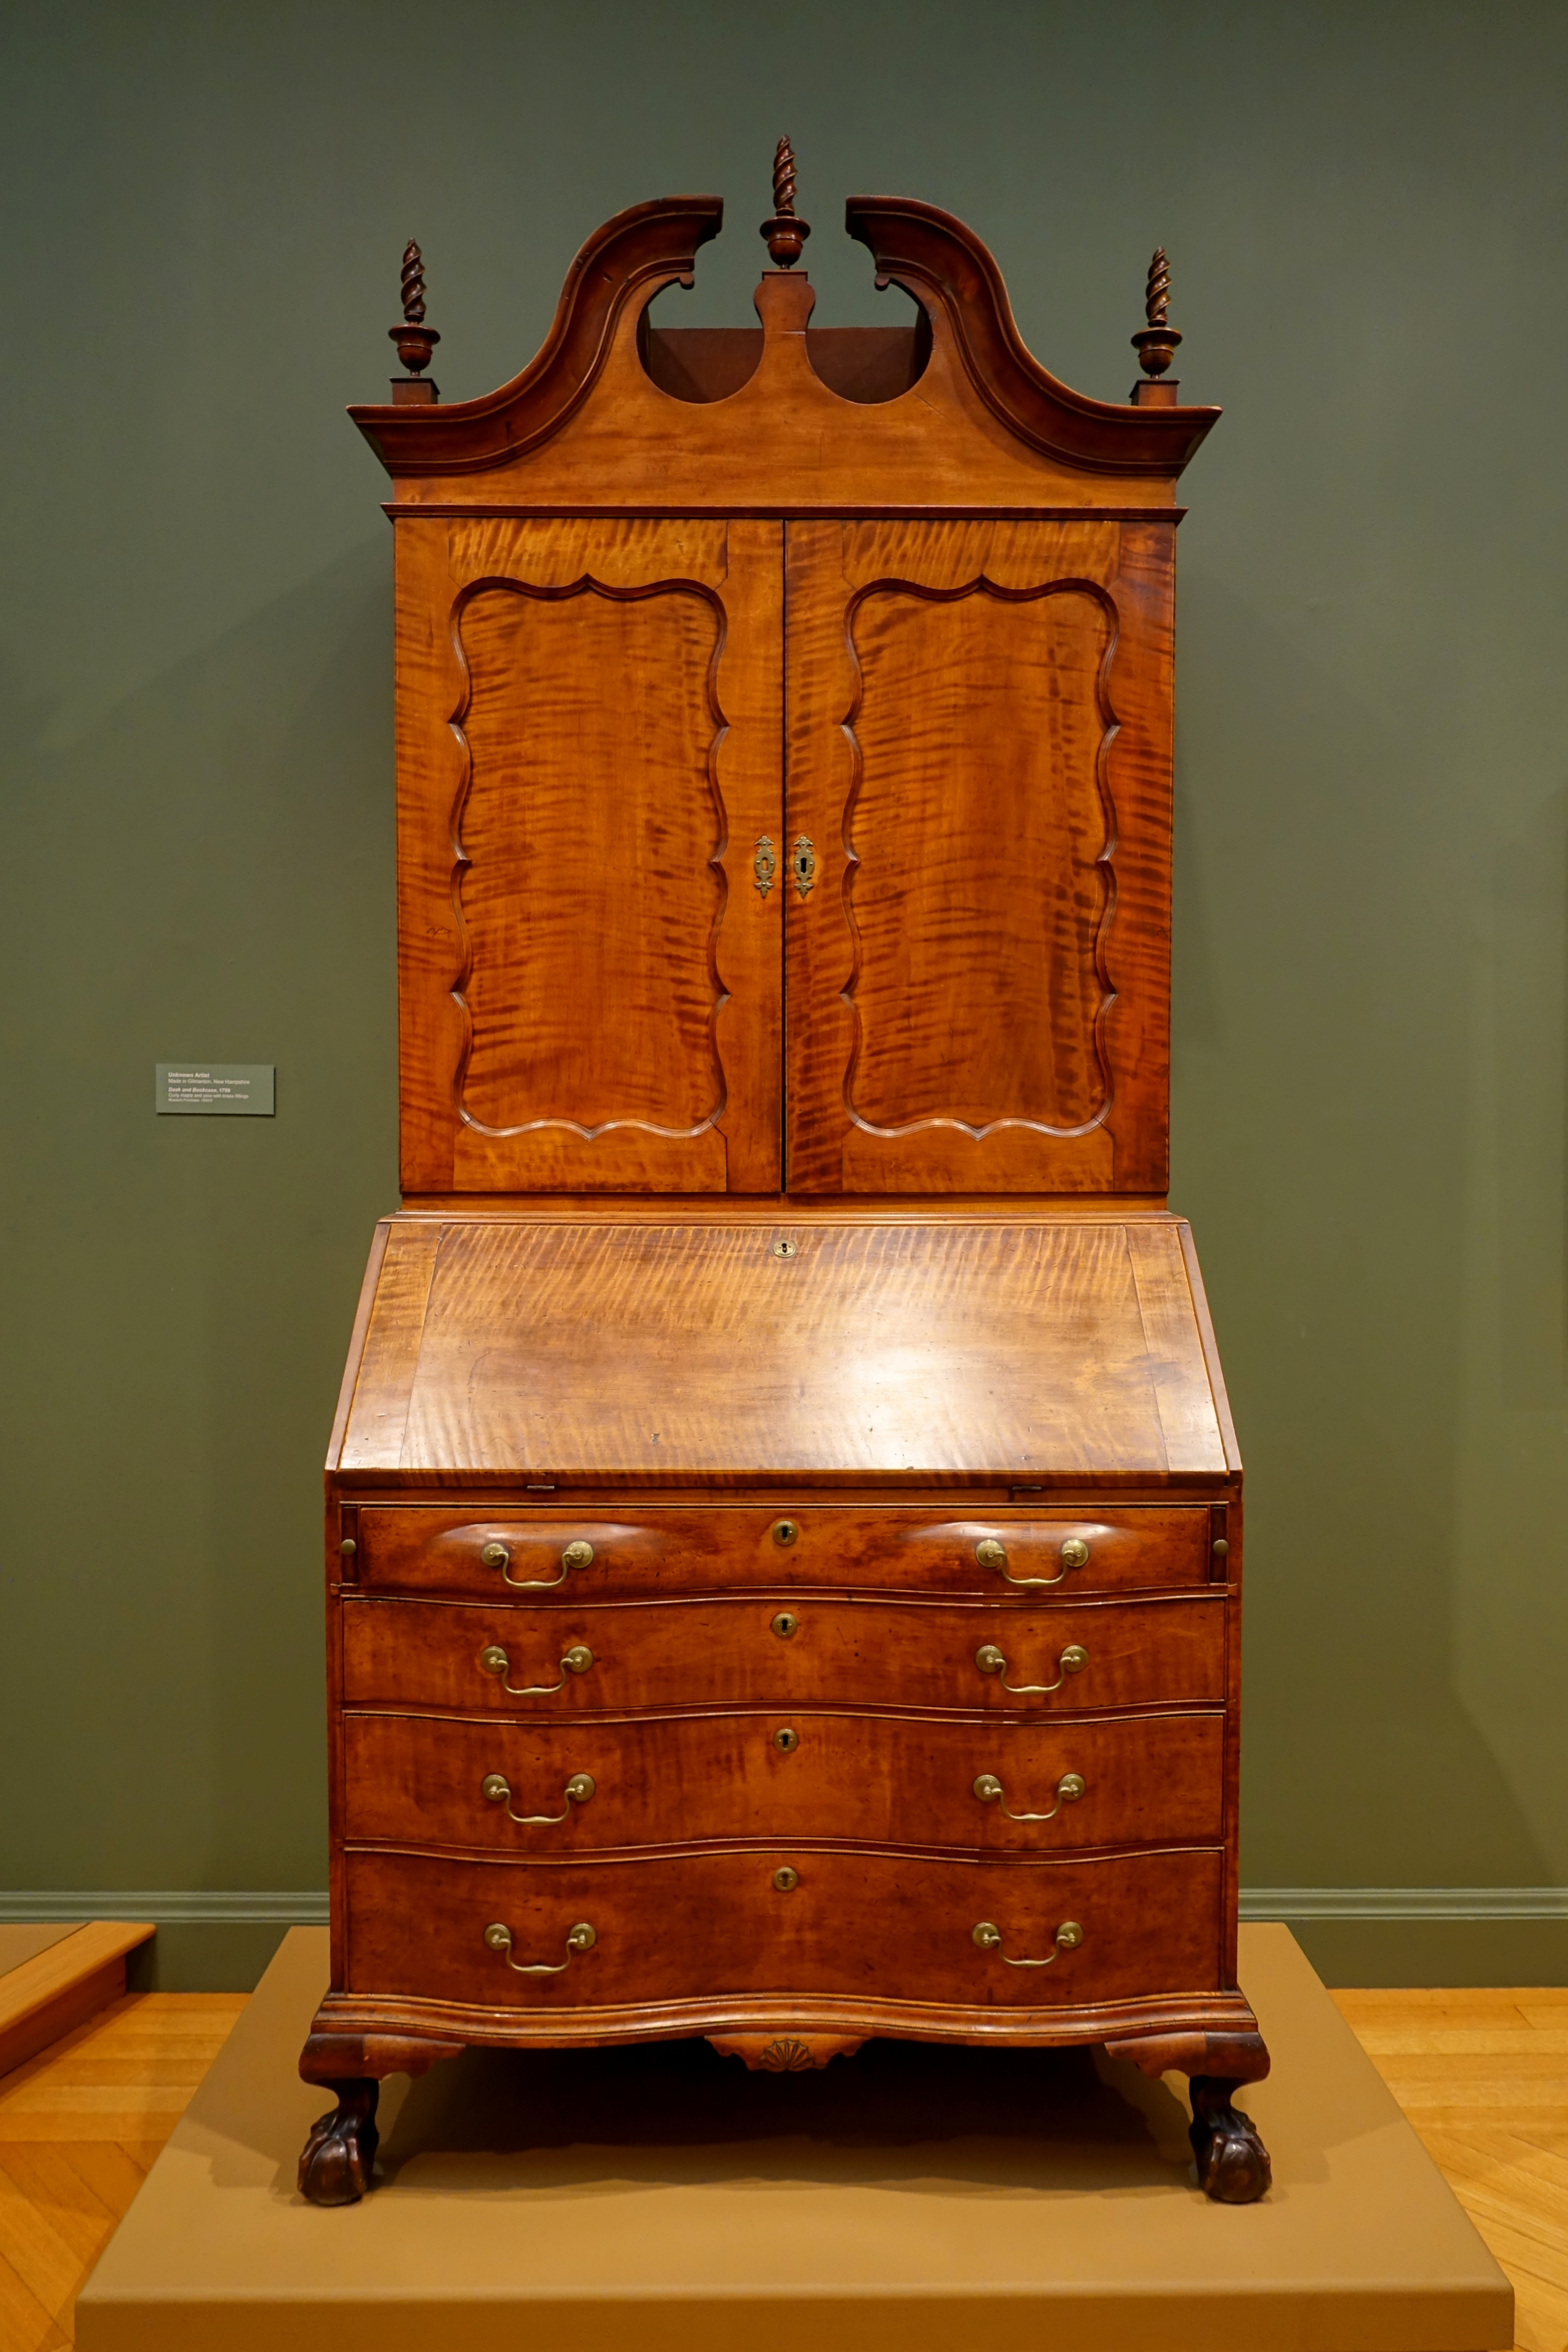 Beau File:Desk And Bookcase, Unknown Maker, Gilmanton, New Hampshire, 1799,  Curly Maple, Pine, Brass Fittings   Currier Museum Of Art   Manchester, NH  ...